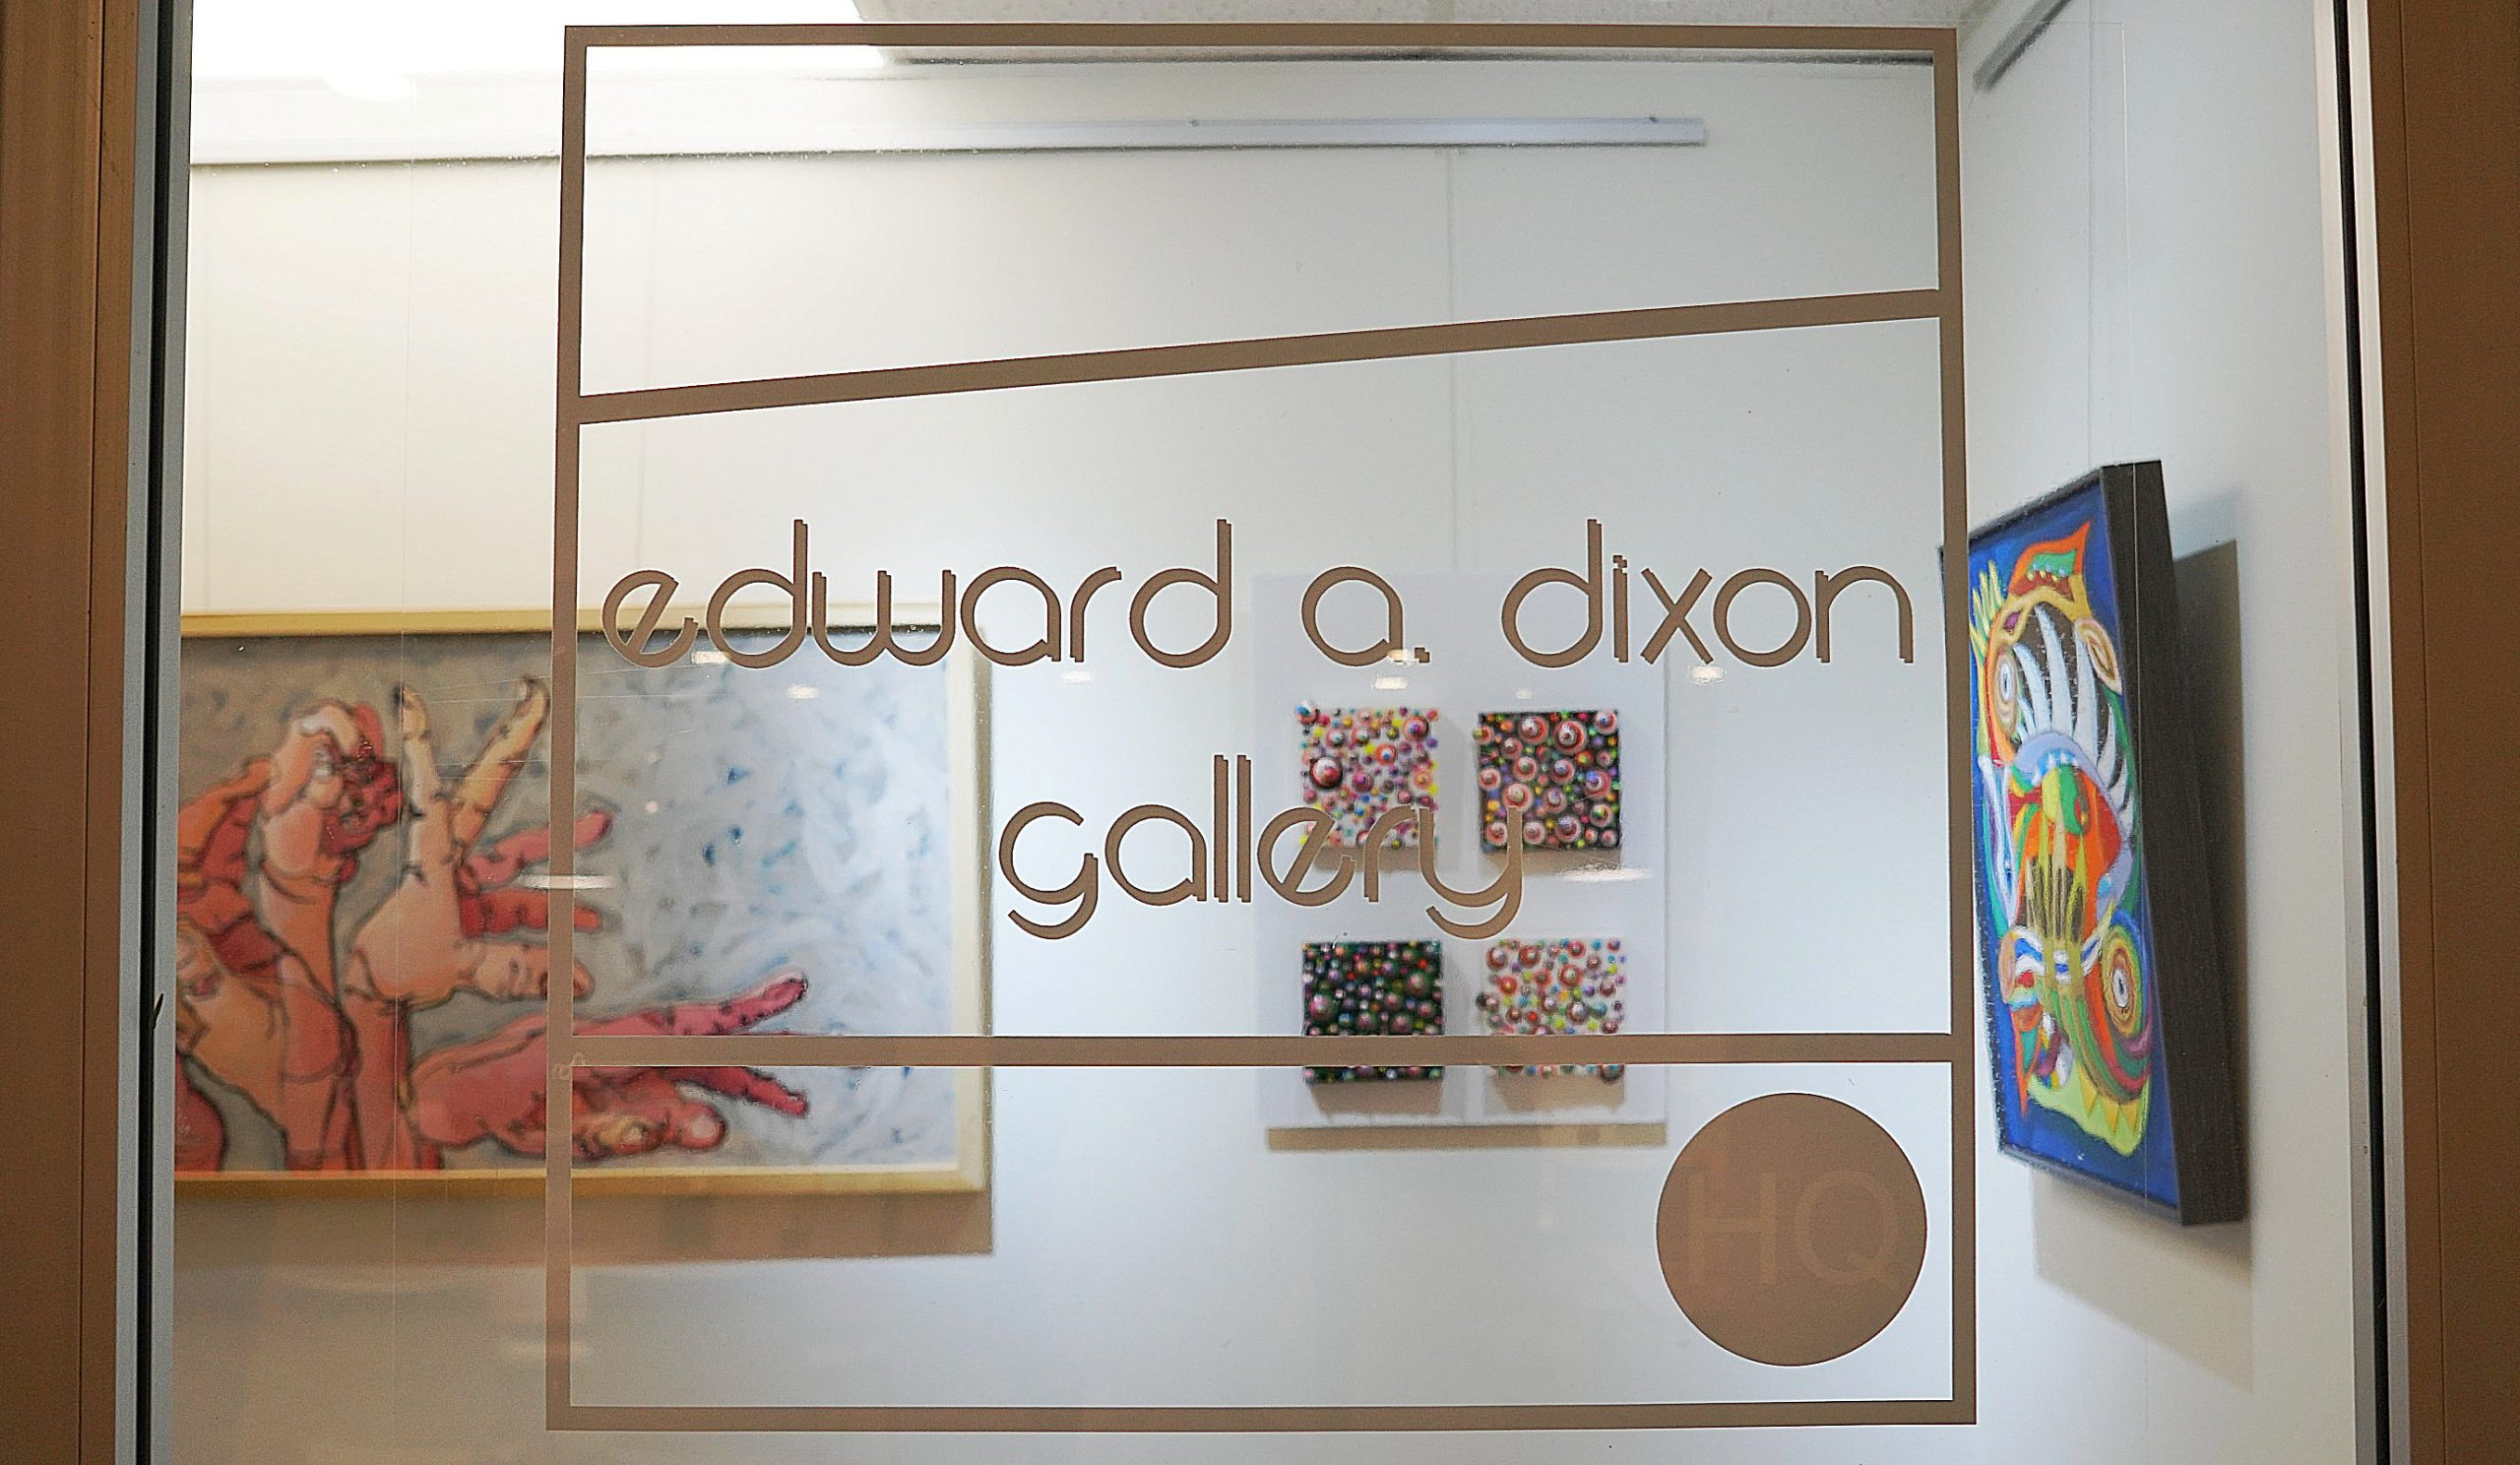 Image of the window of the Edward A Dixong Gallery. Their logo displays showing the gallery name